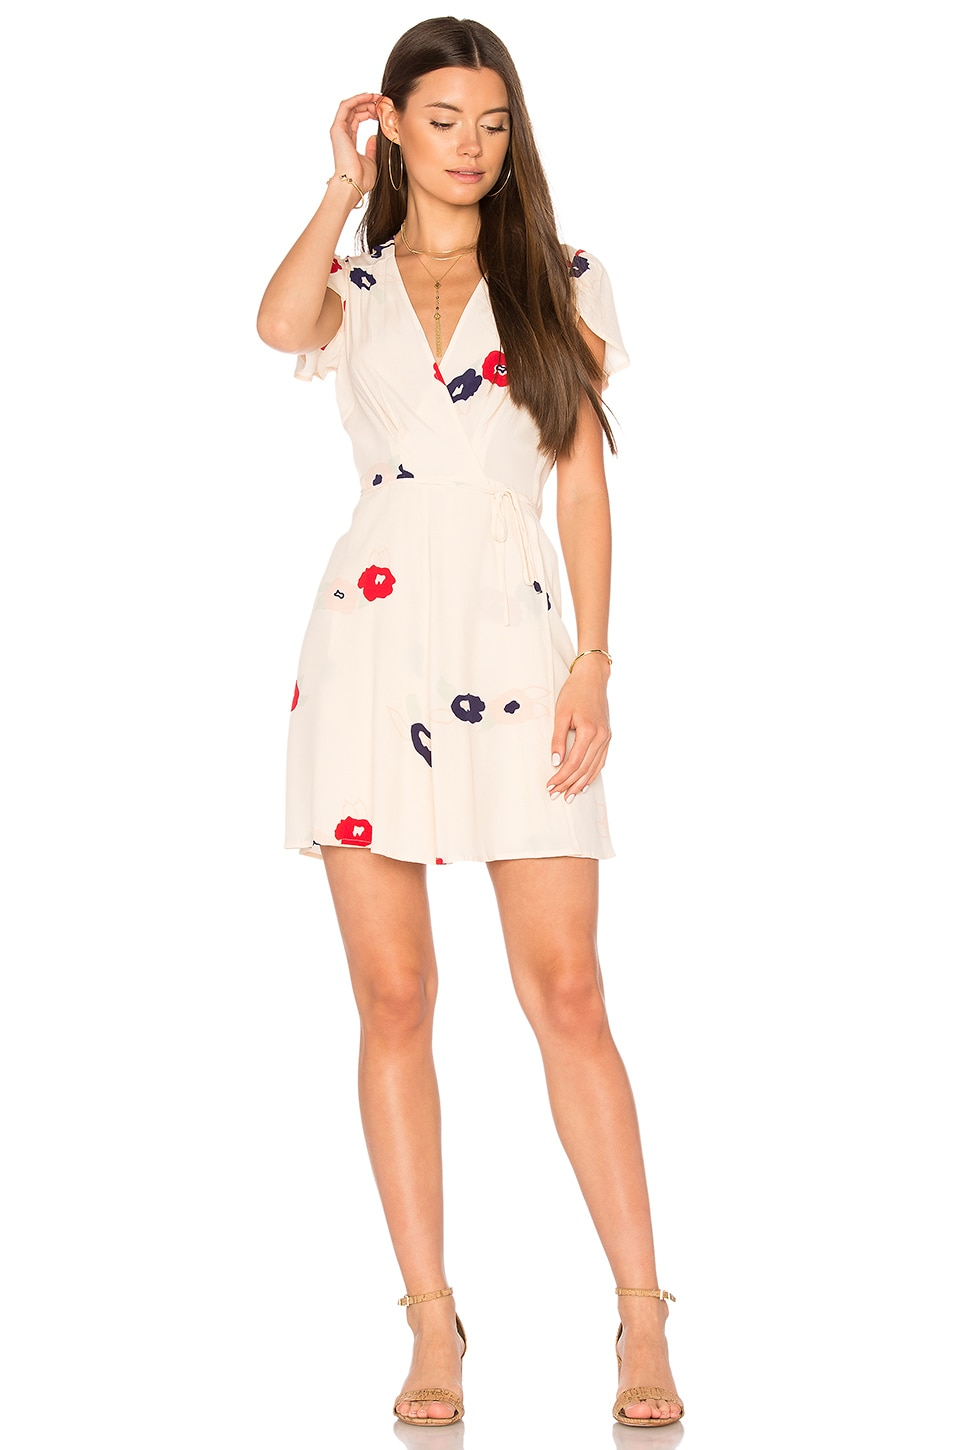 ROLLA'S Dancer Wrap Dress in Vanilla Rose